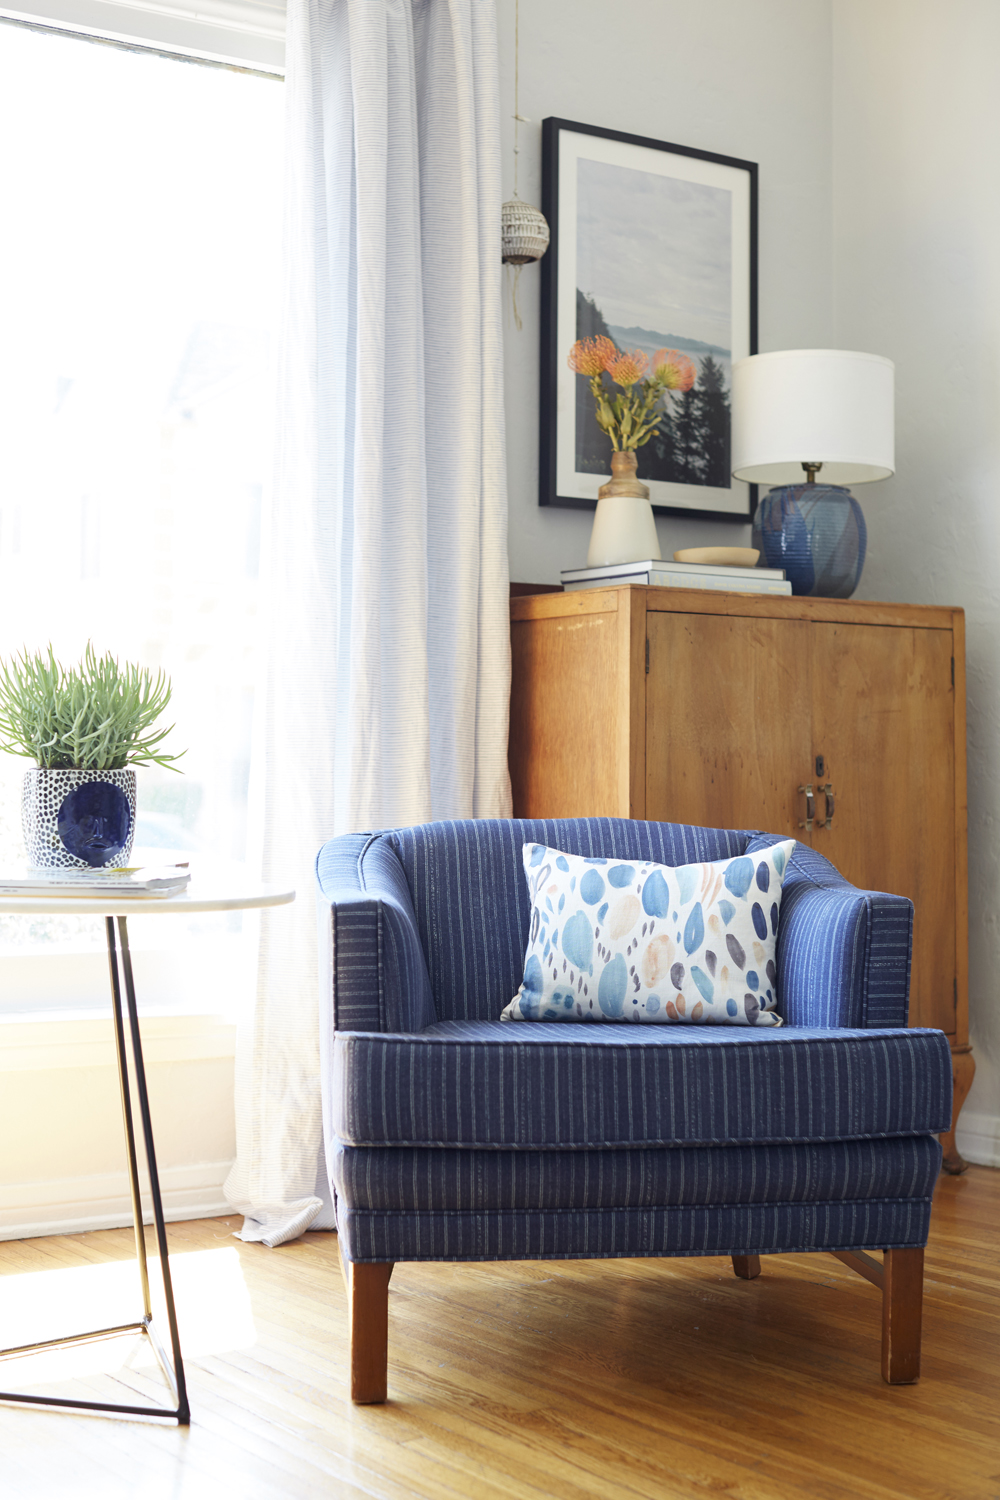 ginny_macdonald_blue_striped_chair